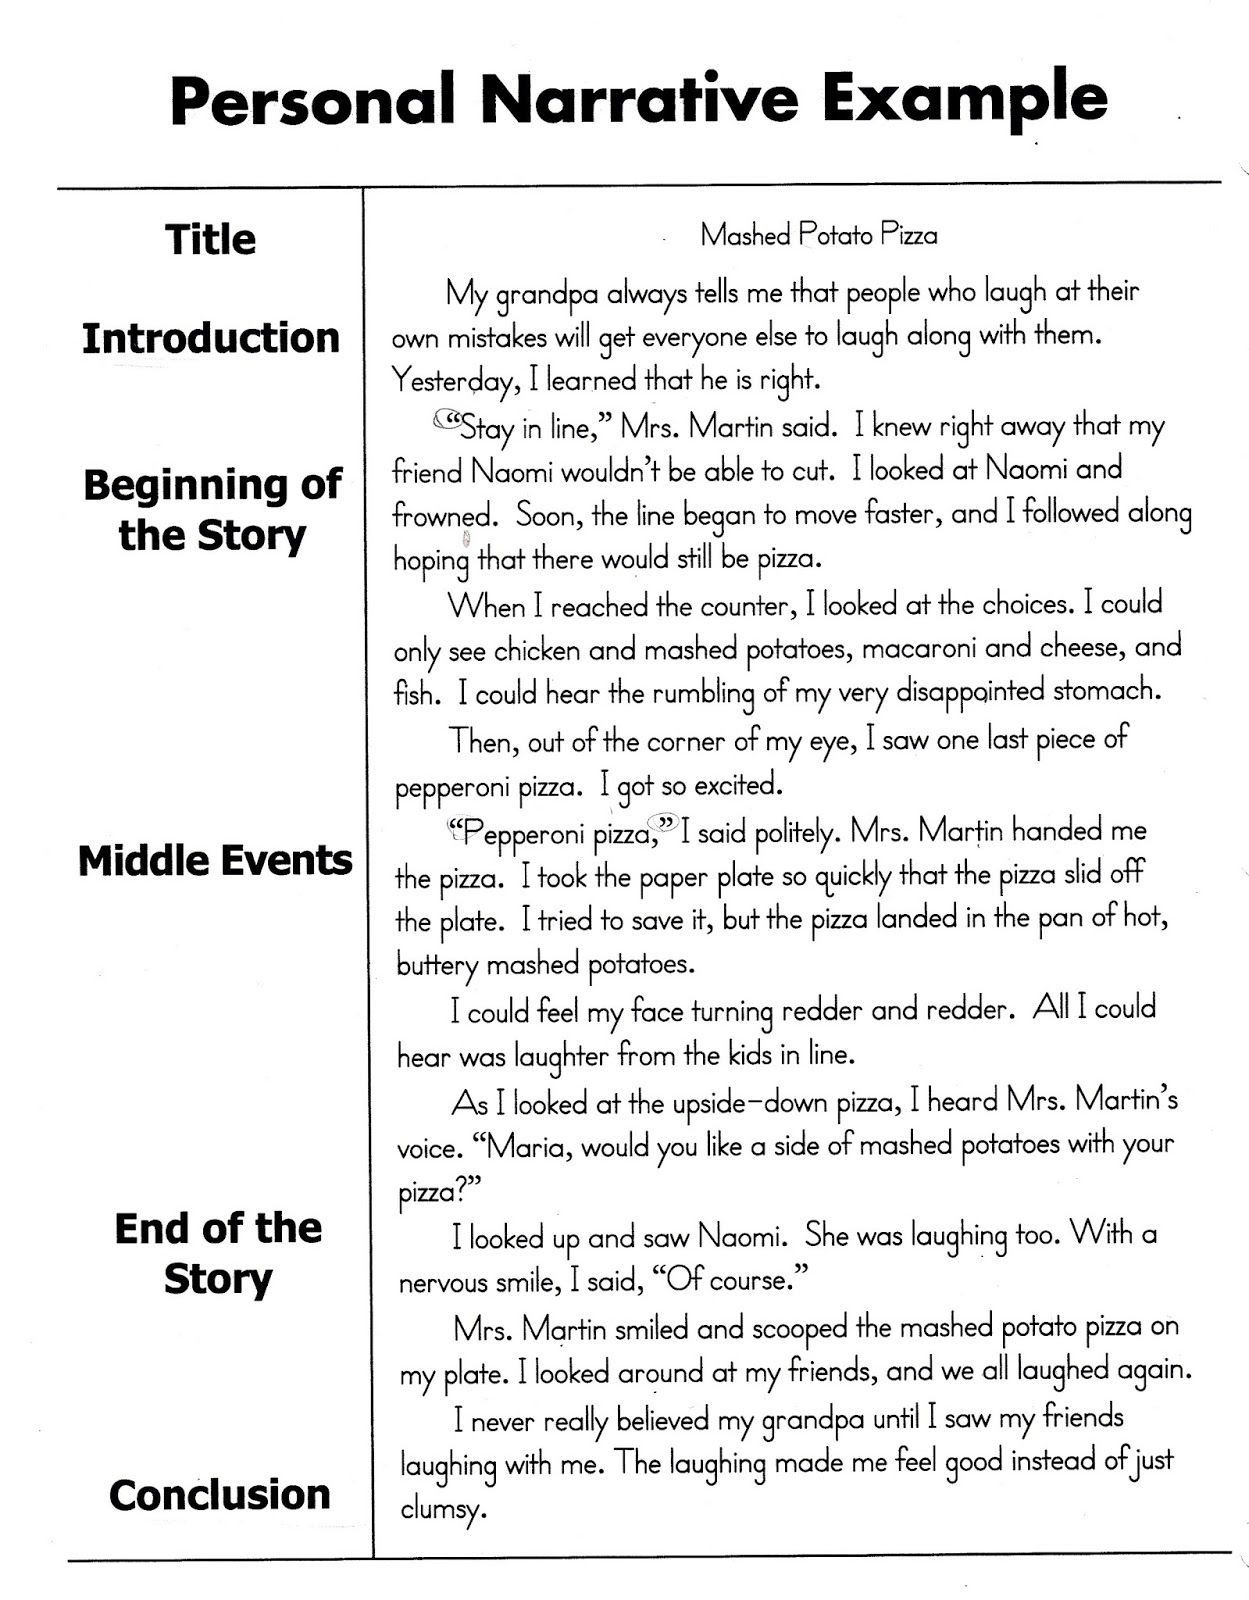 000 Unusual Personal Narrative Essay Inspiration  Structure Sample High School PromptFull